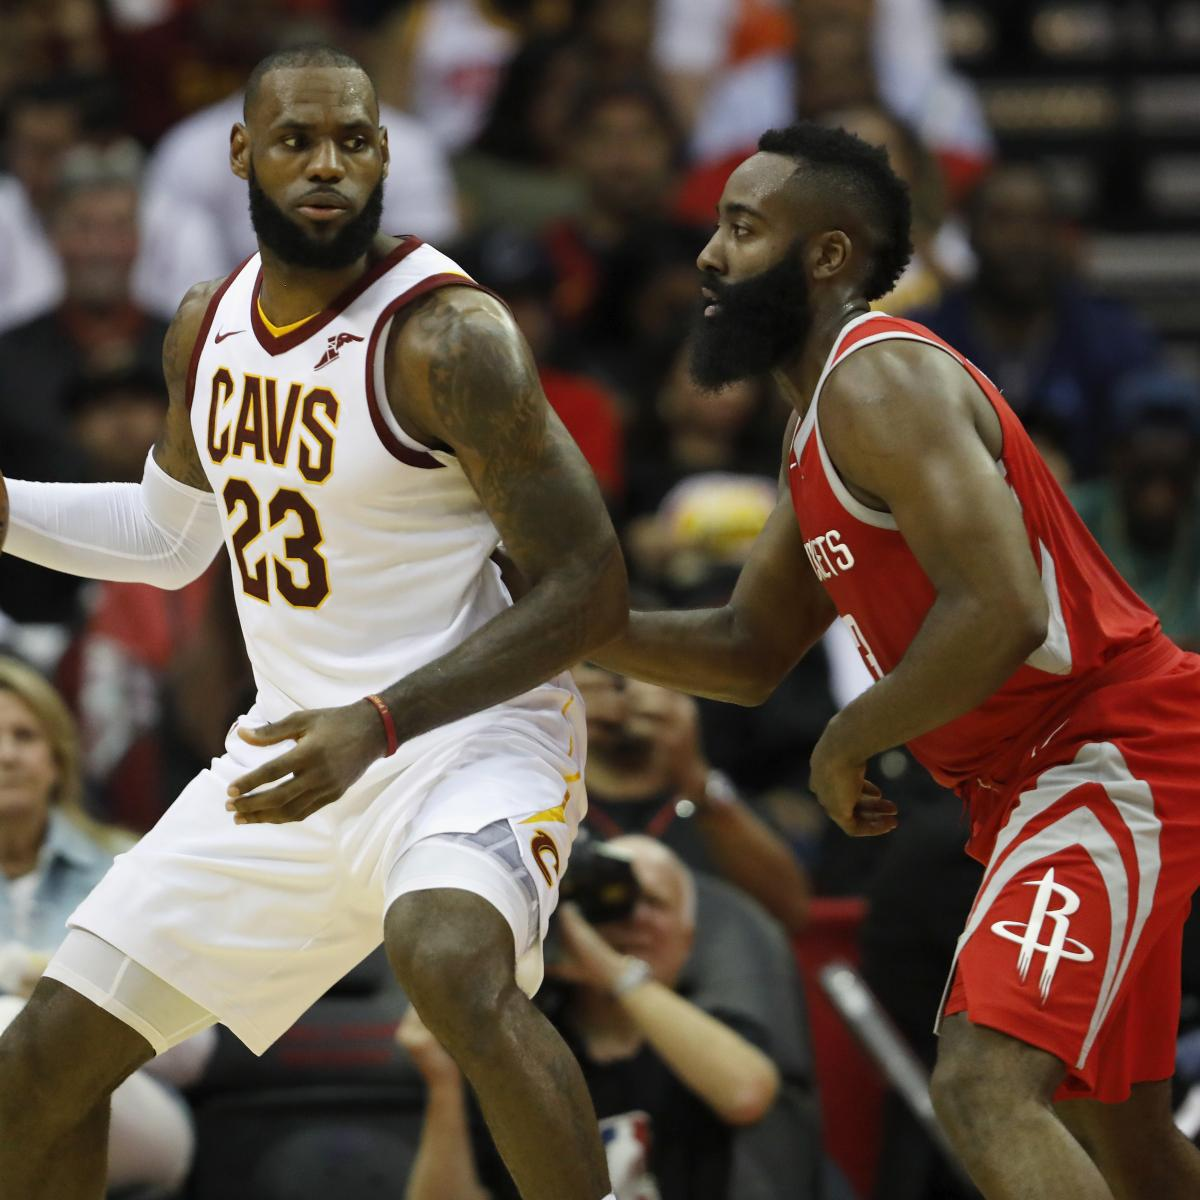 James Harden Free Agency: James Harden Doesn't Try Recruiting LeBron James, Says